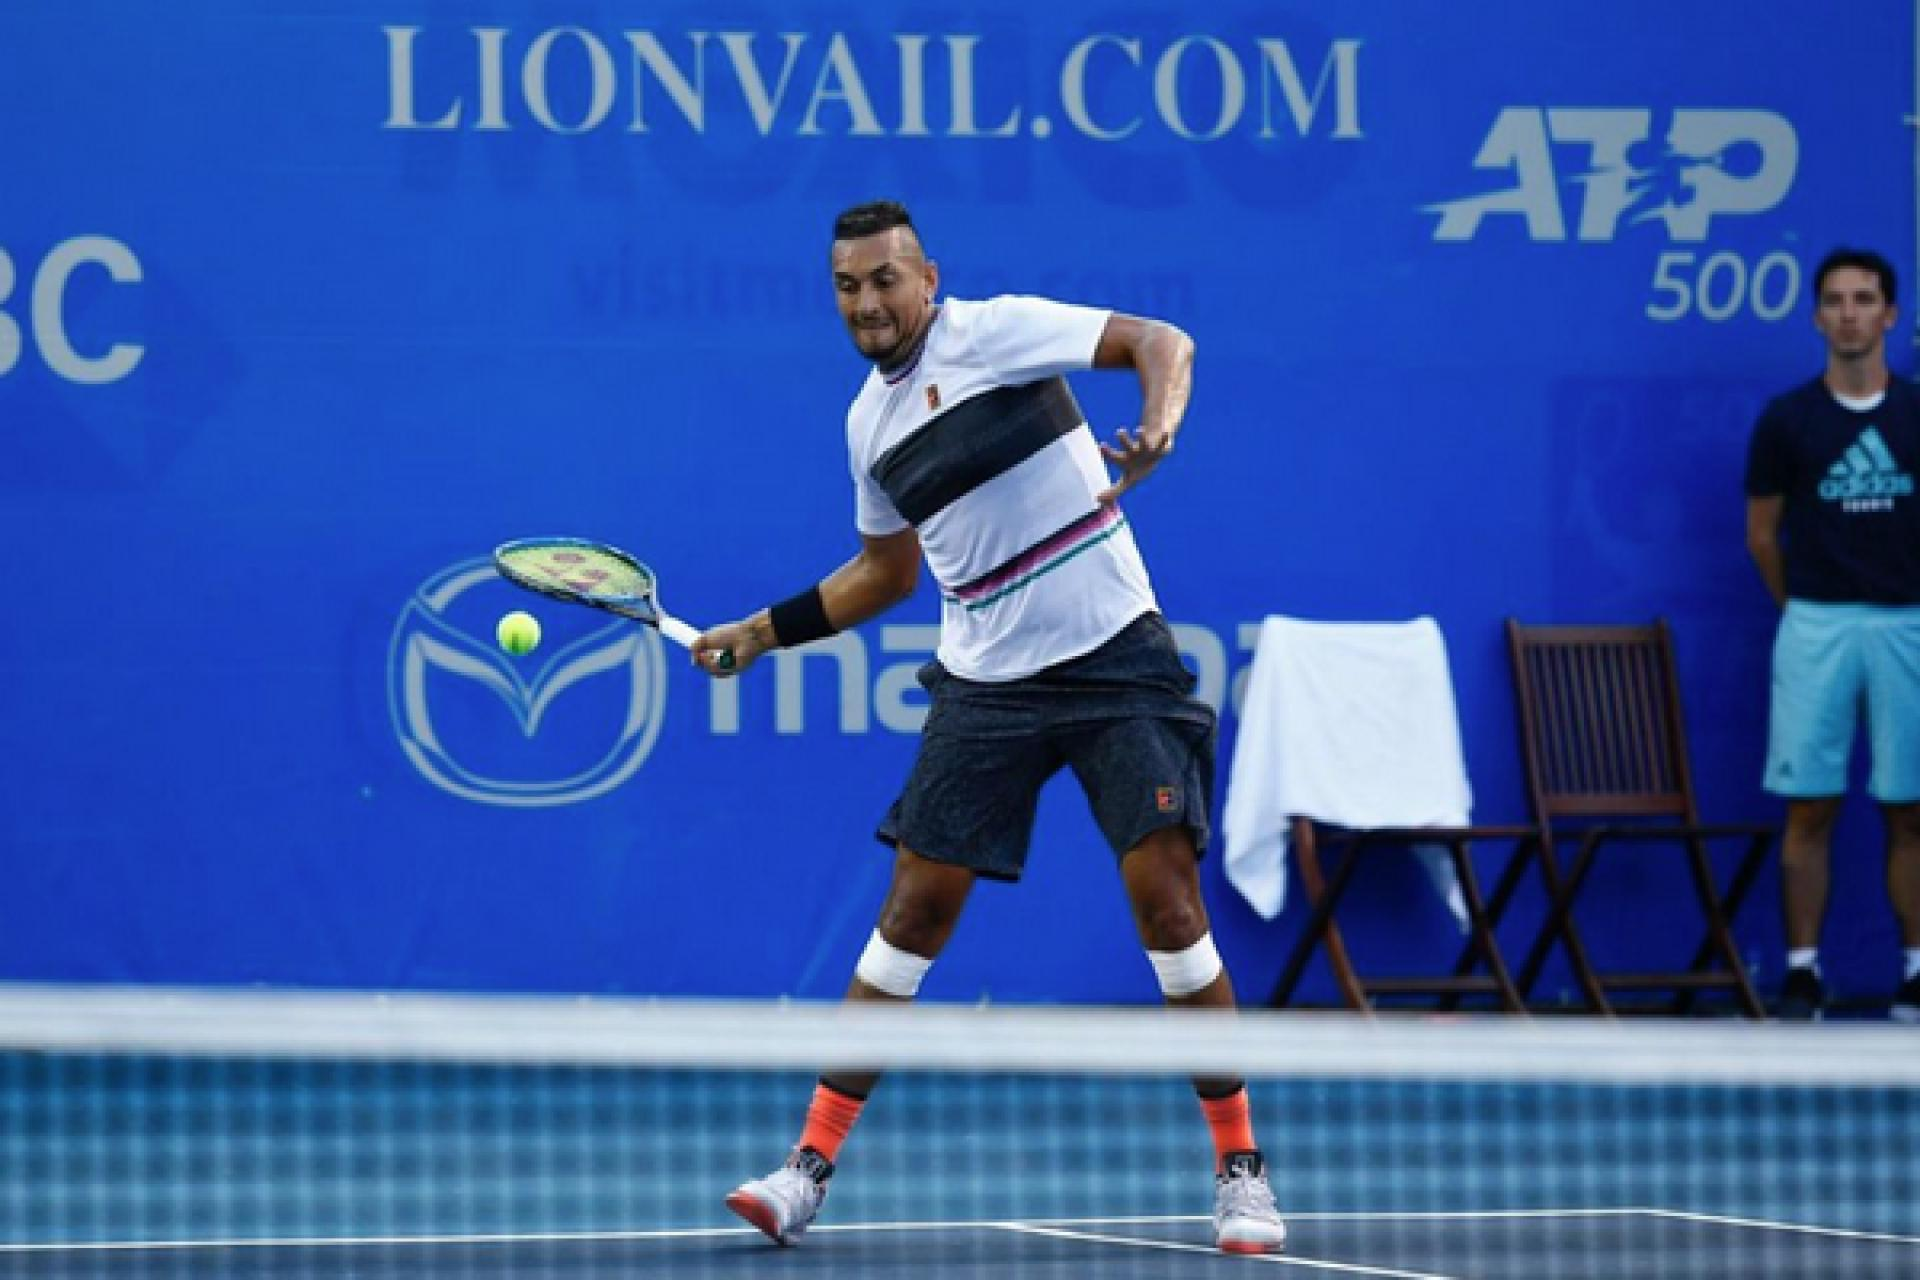 Atp Acapulco Nick Kyrgios Defends Three Match Points To Oust Rafael Nadal